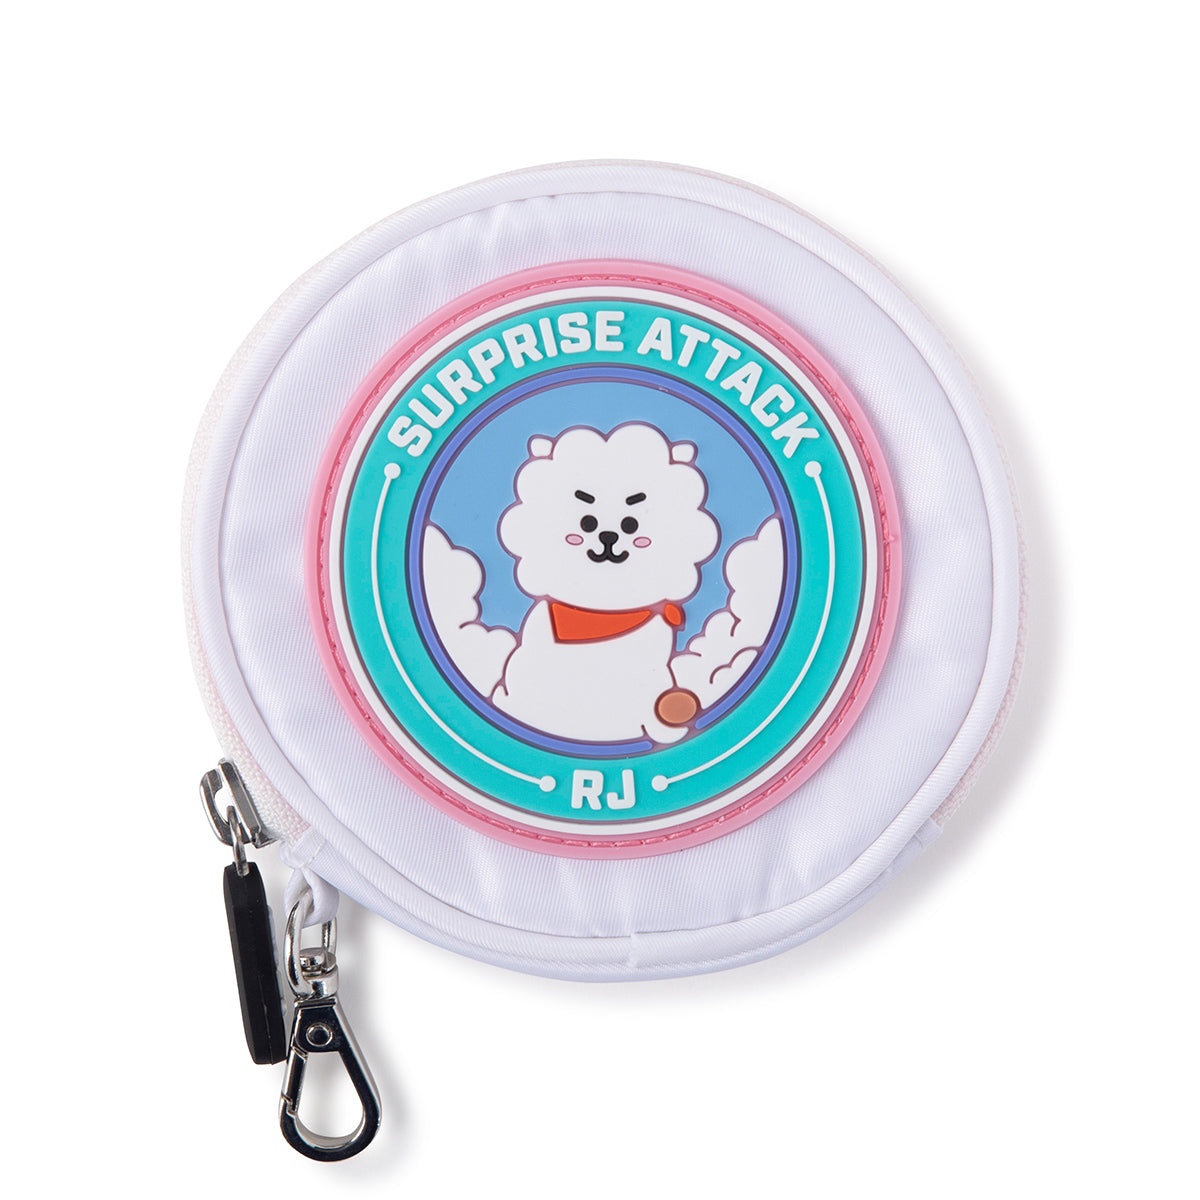 BT21 RJ Wappen Round Coin Purse